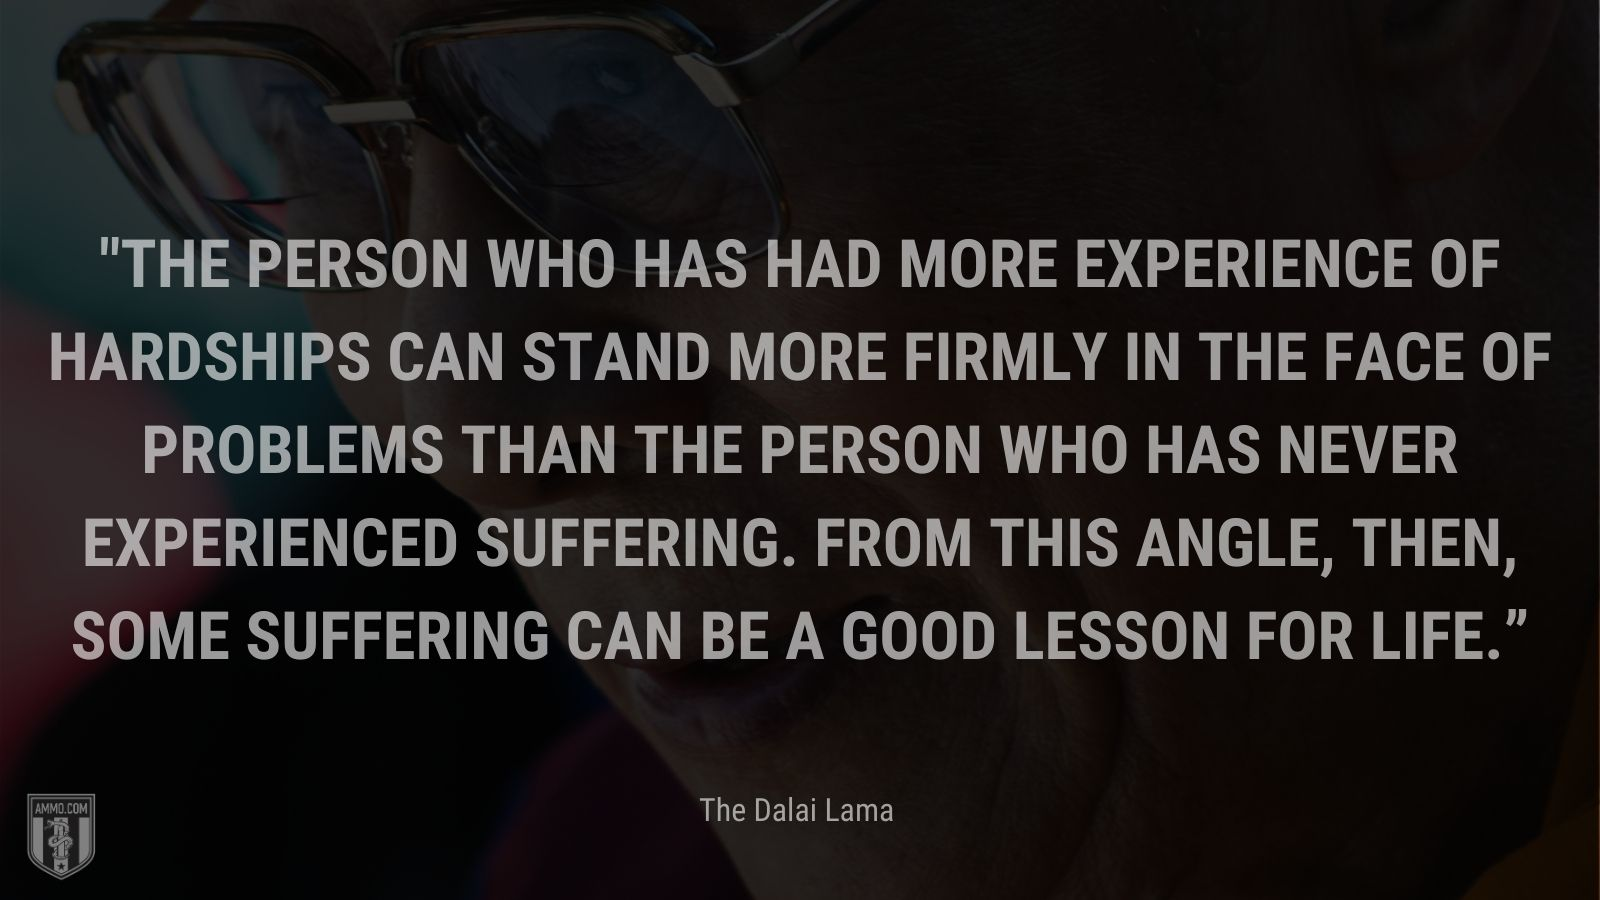 """""""The person who has had more experience of hardships can stand more firmly in the face of problems than the person who has never experienced suffering. From this angle, then, some suffering can be a good lesson for life."""" - The Dalai Lama"""